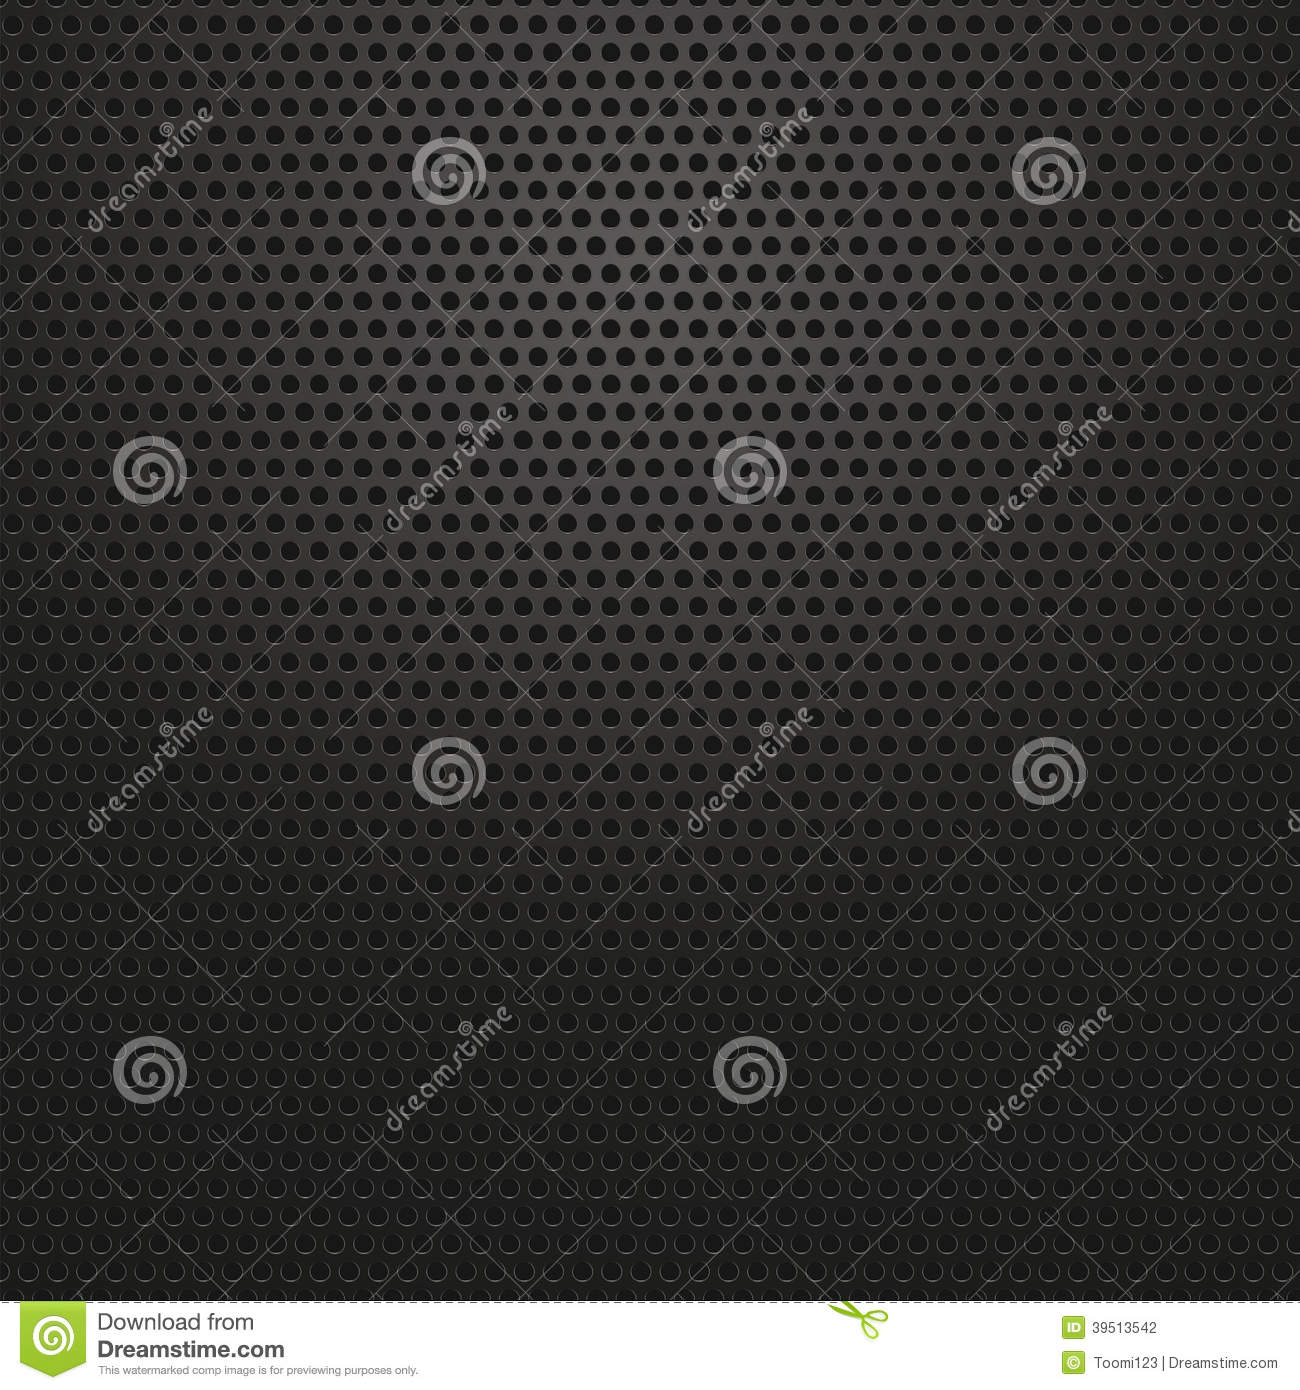 Technology background with circle perforated carbon